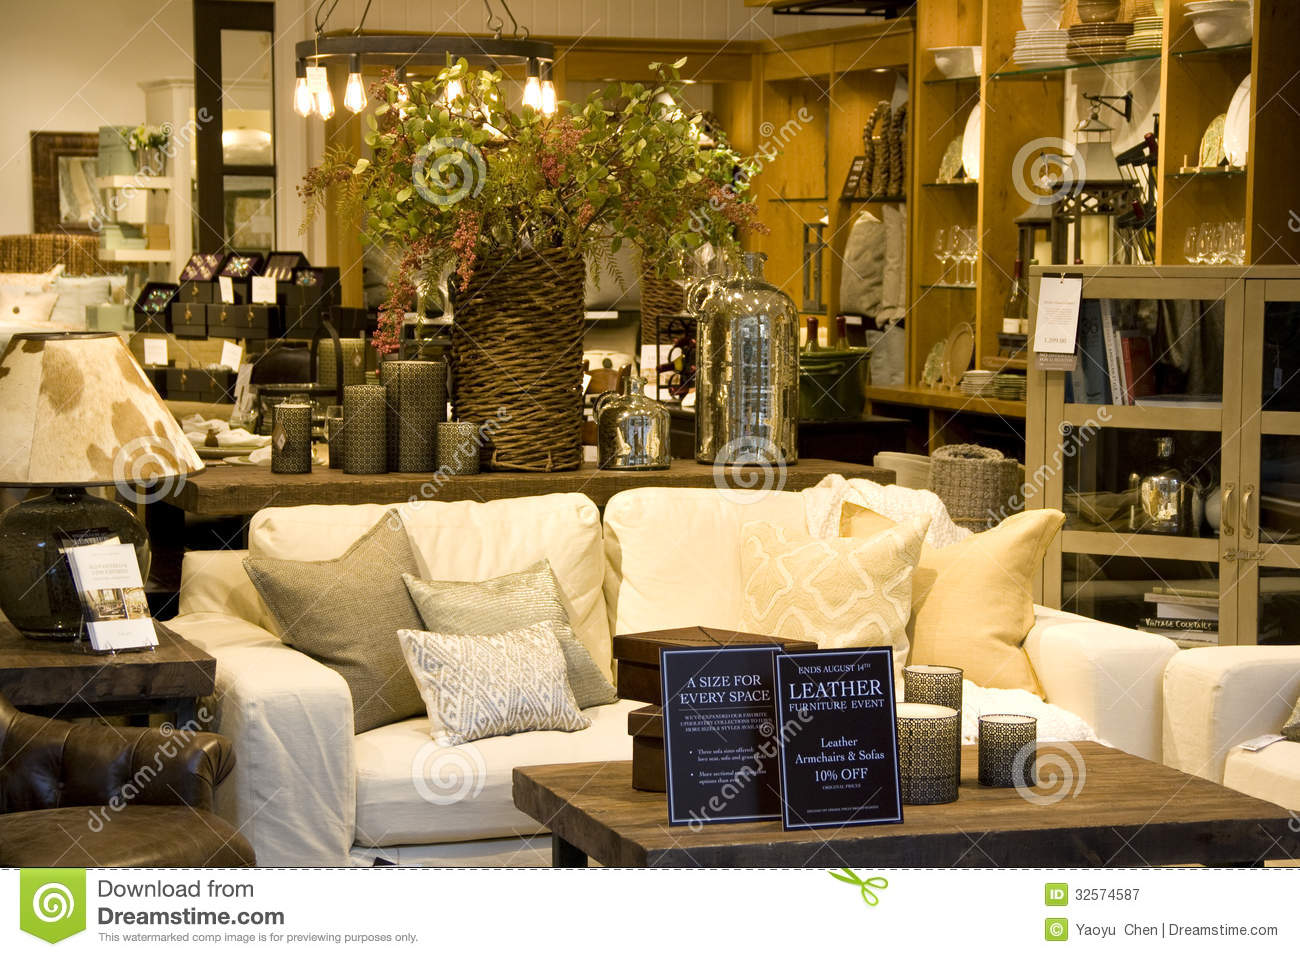 furniture home decor store editorial photography - Home Decor Furniture